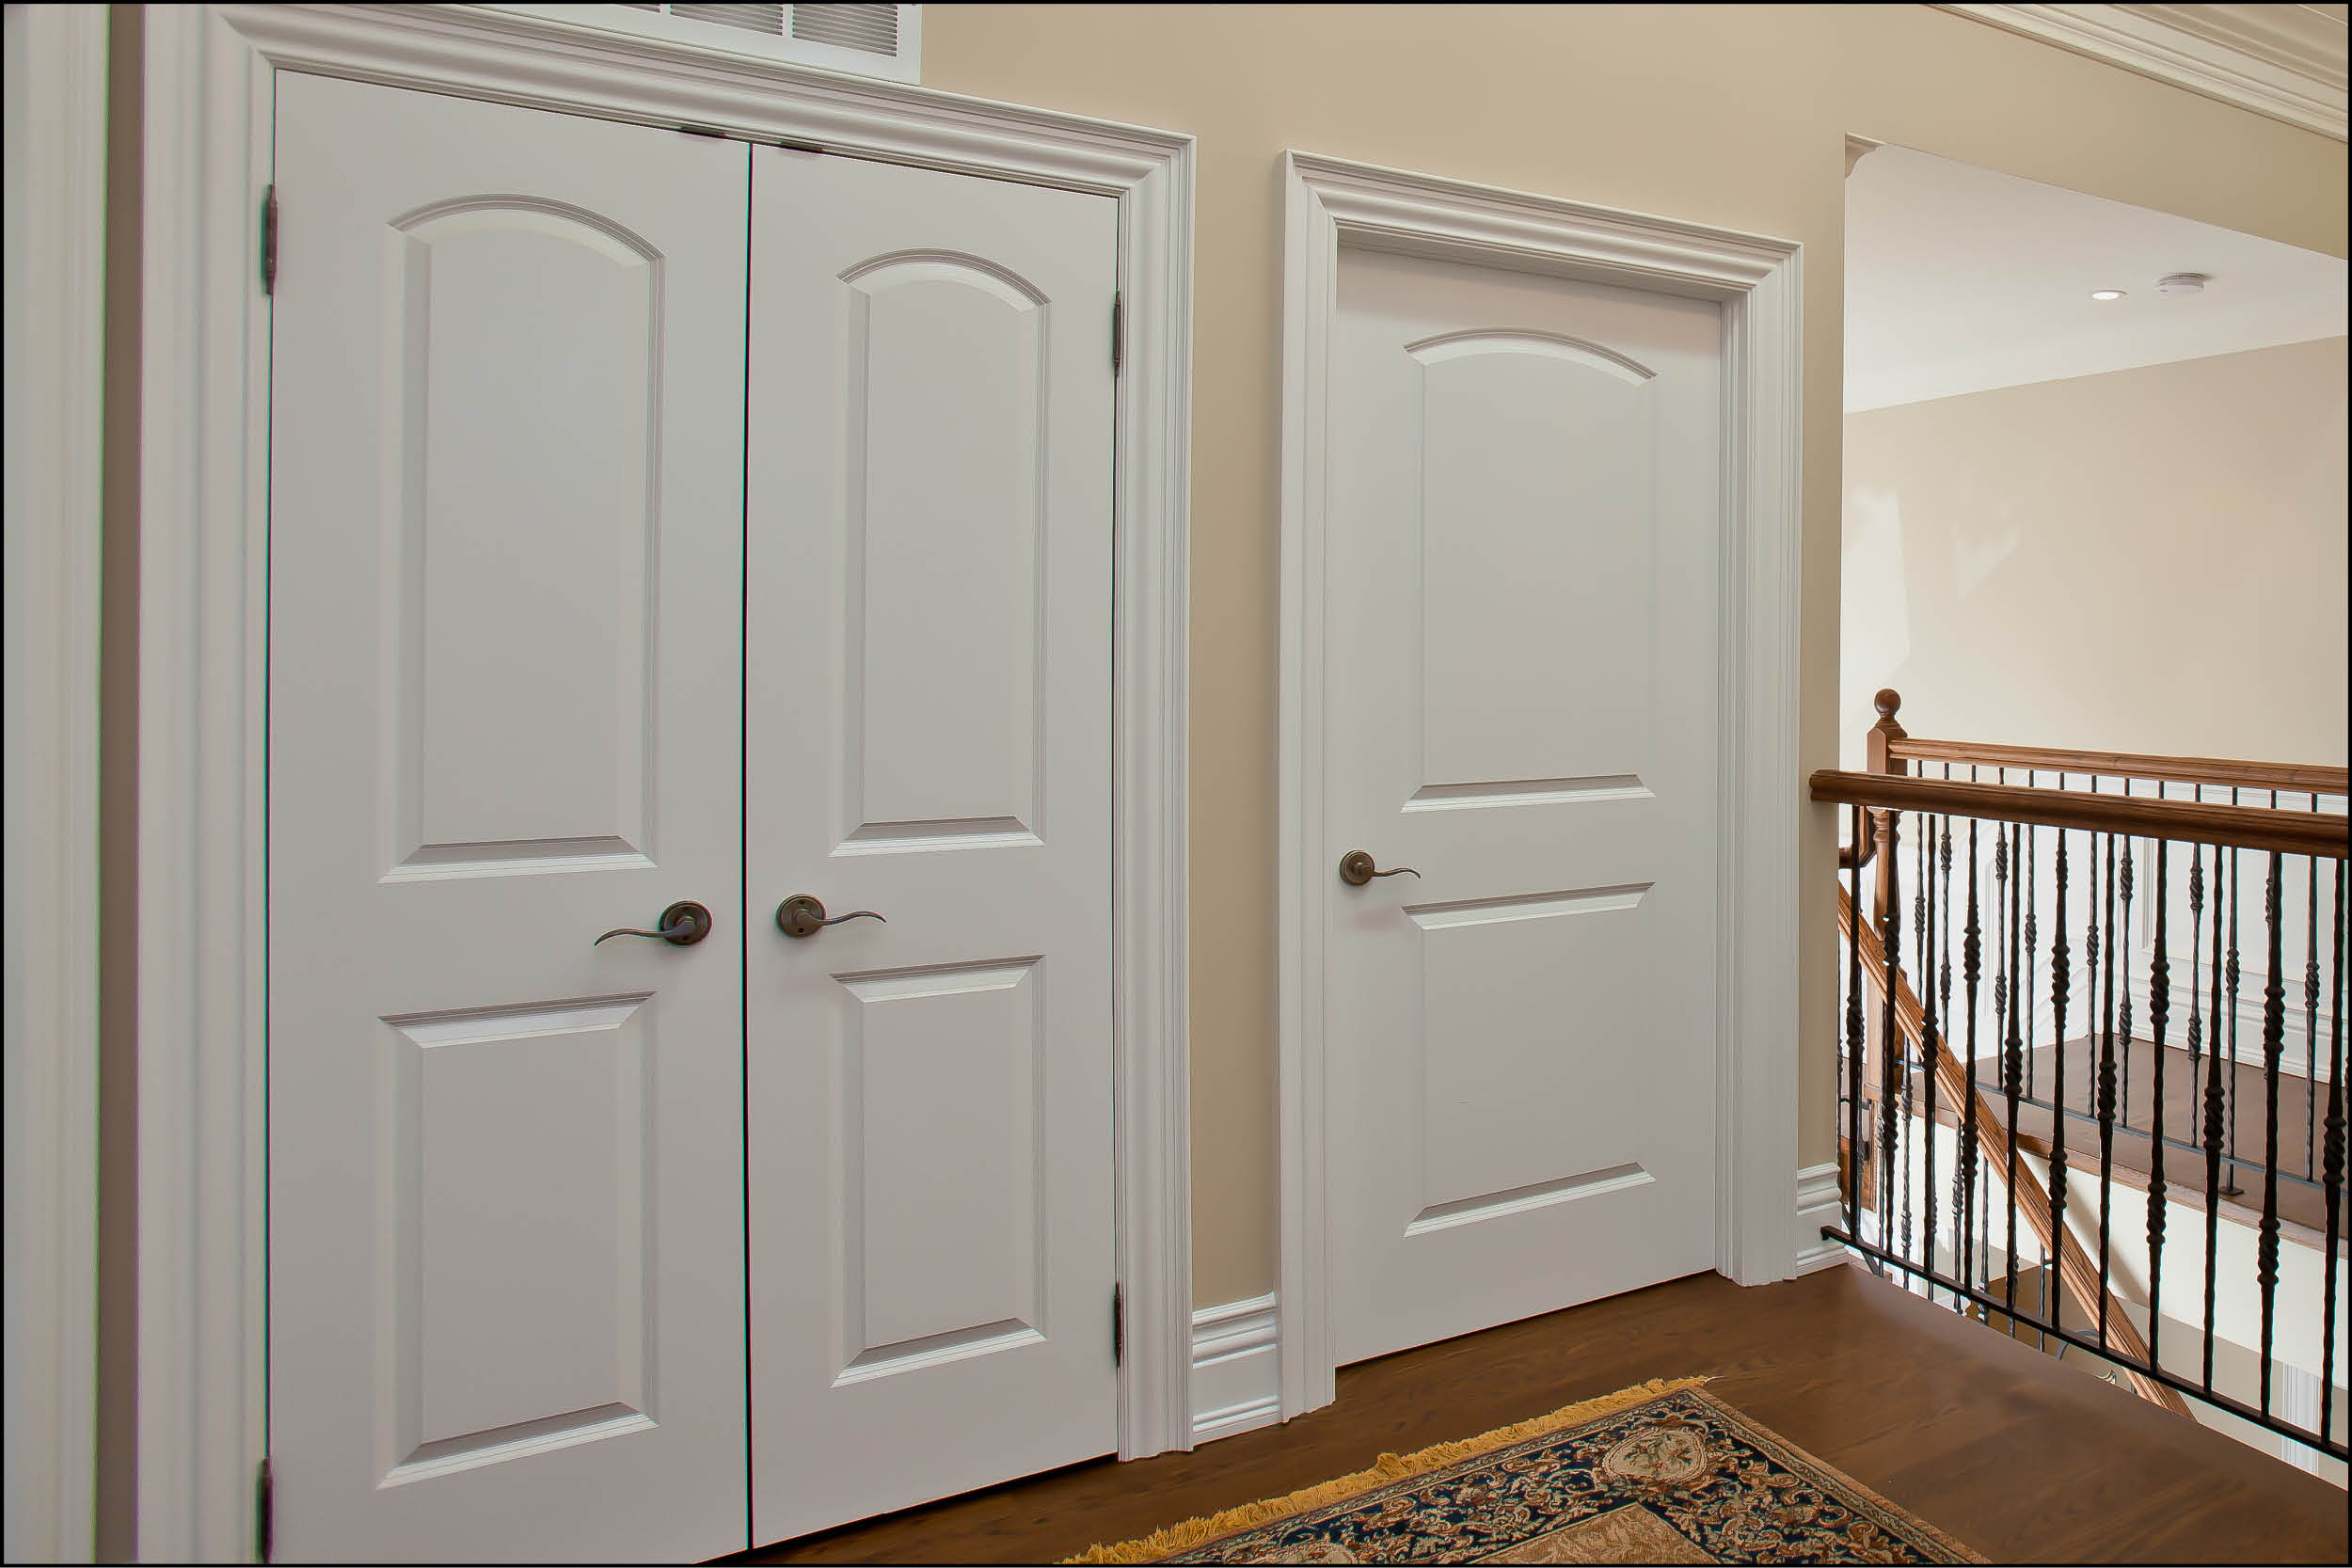 Le Meilleur Interior Doors Fondare Finish Construction Ce Mois Ci